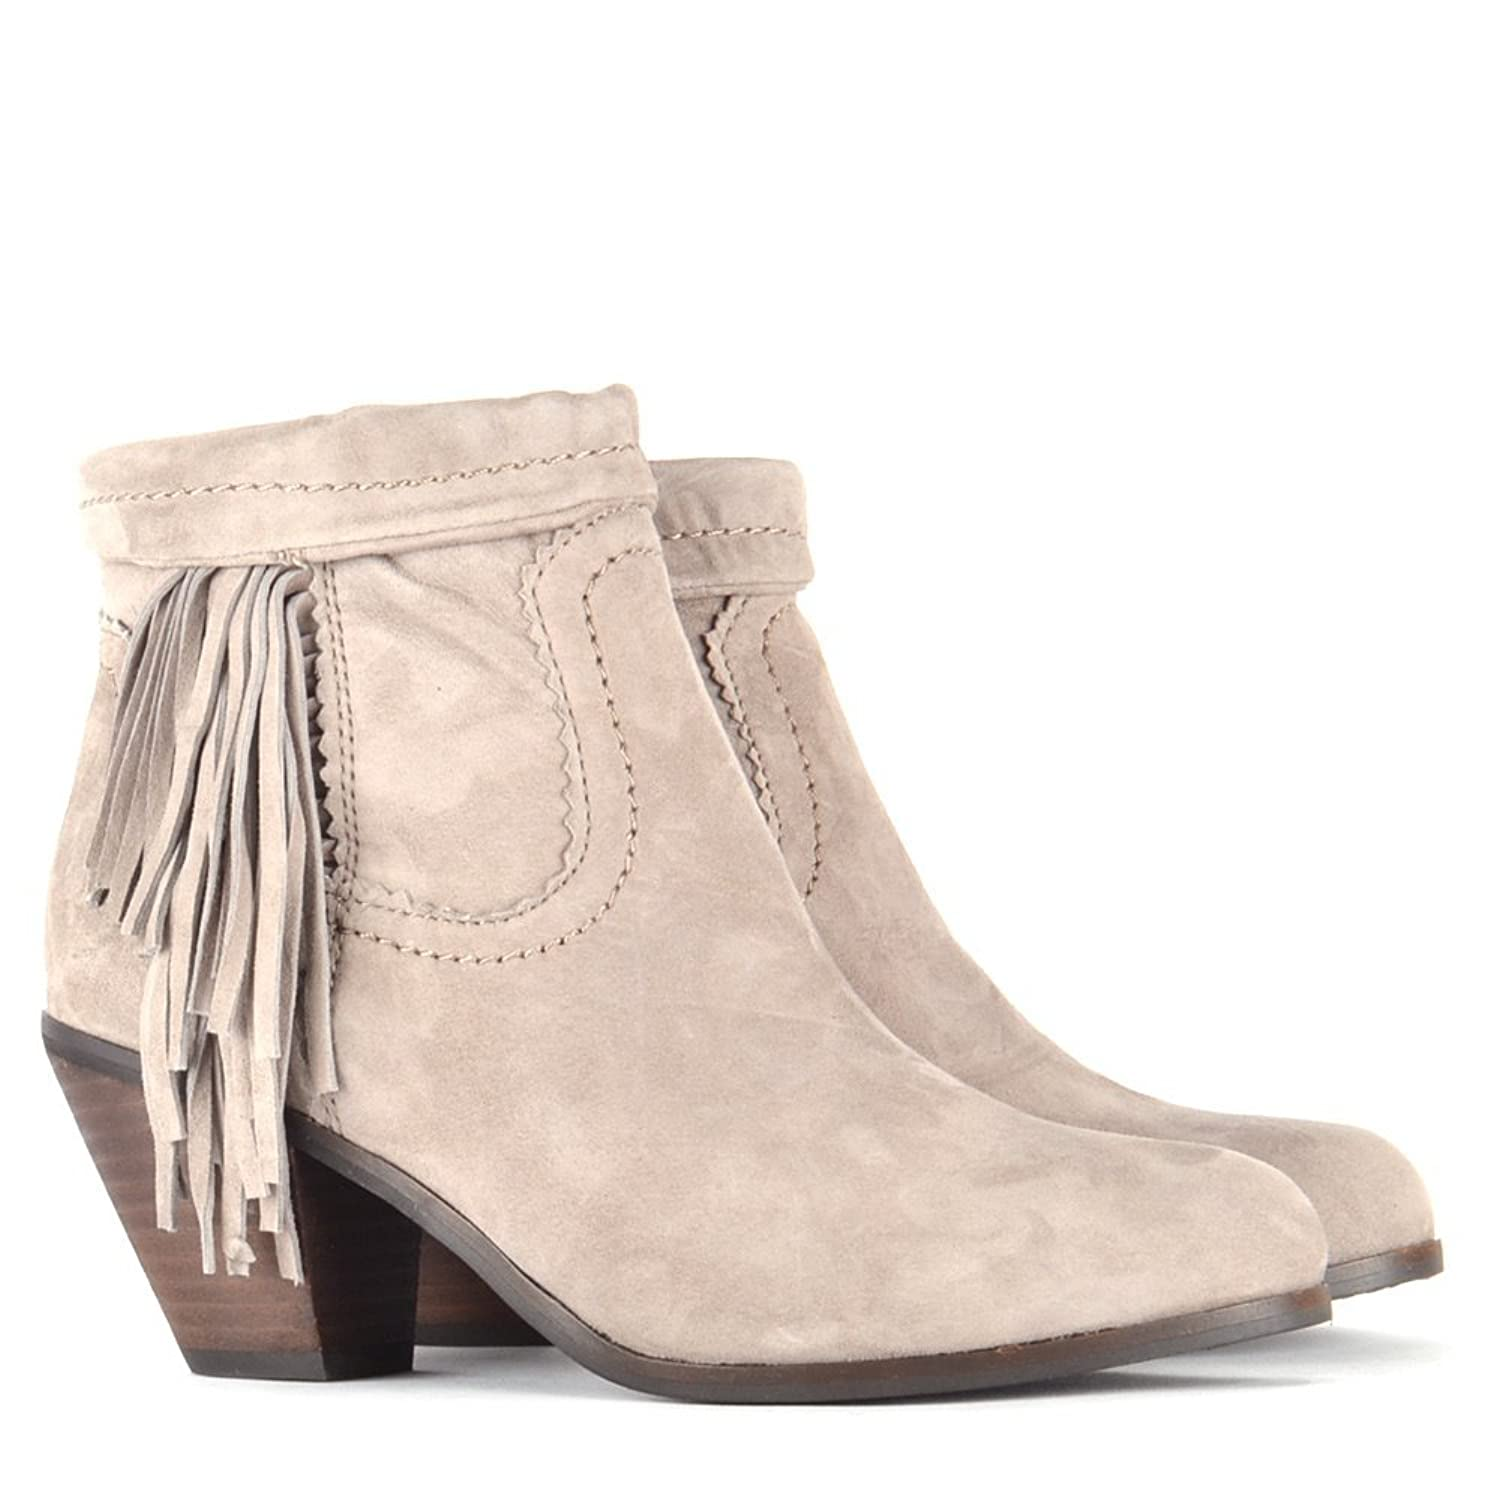 599840a6853e3 Sam Edelman Louie Tan Putty kid suede ankle boots Tan 40.5  Amazon.co.uk   Shoes   Bags